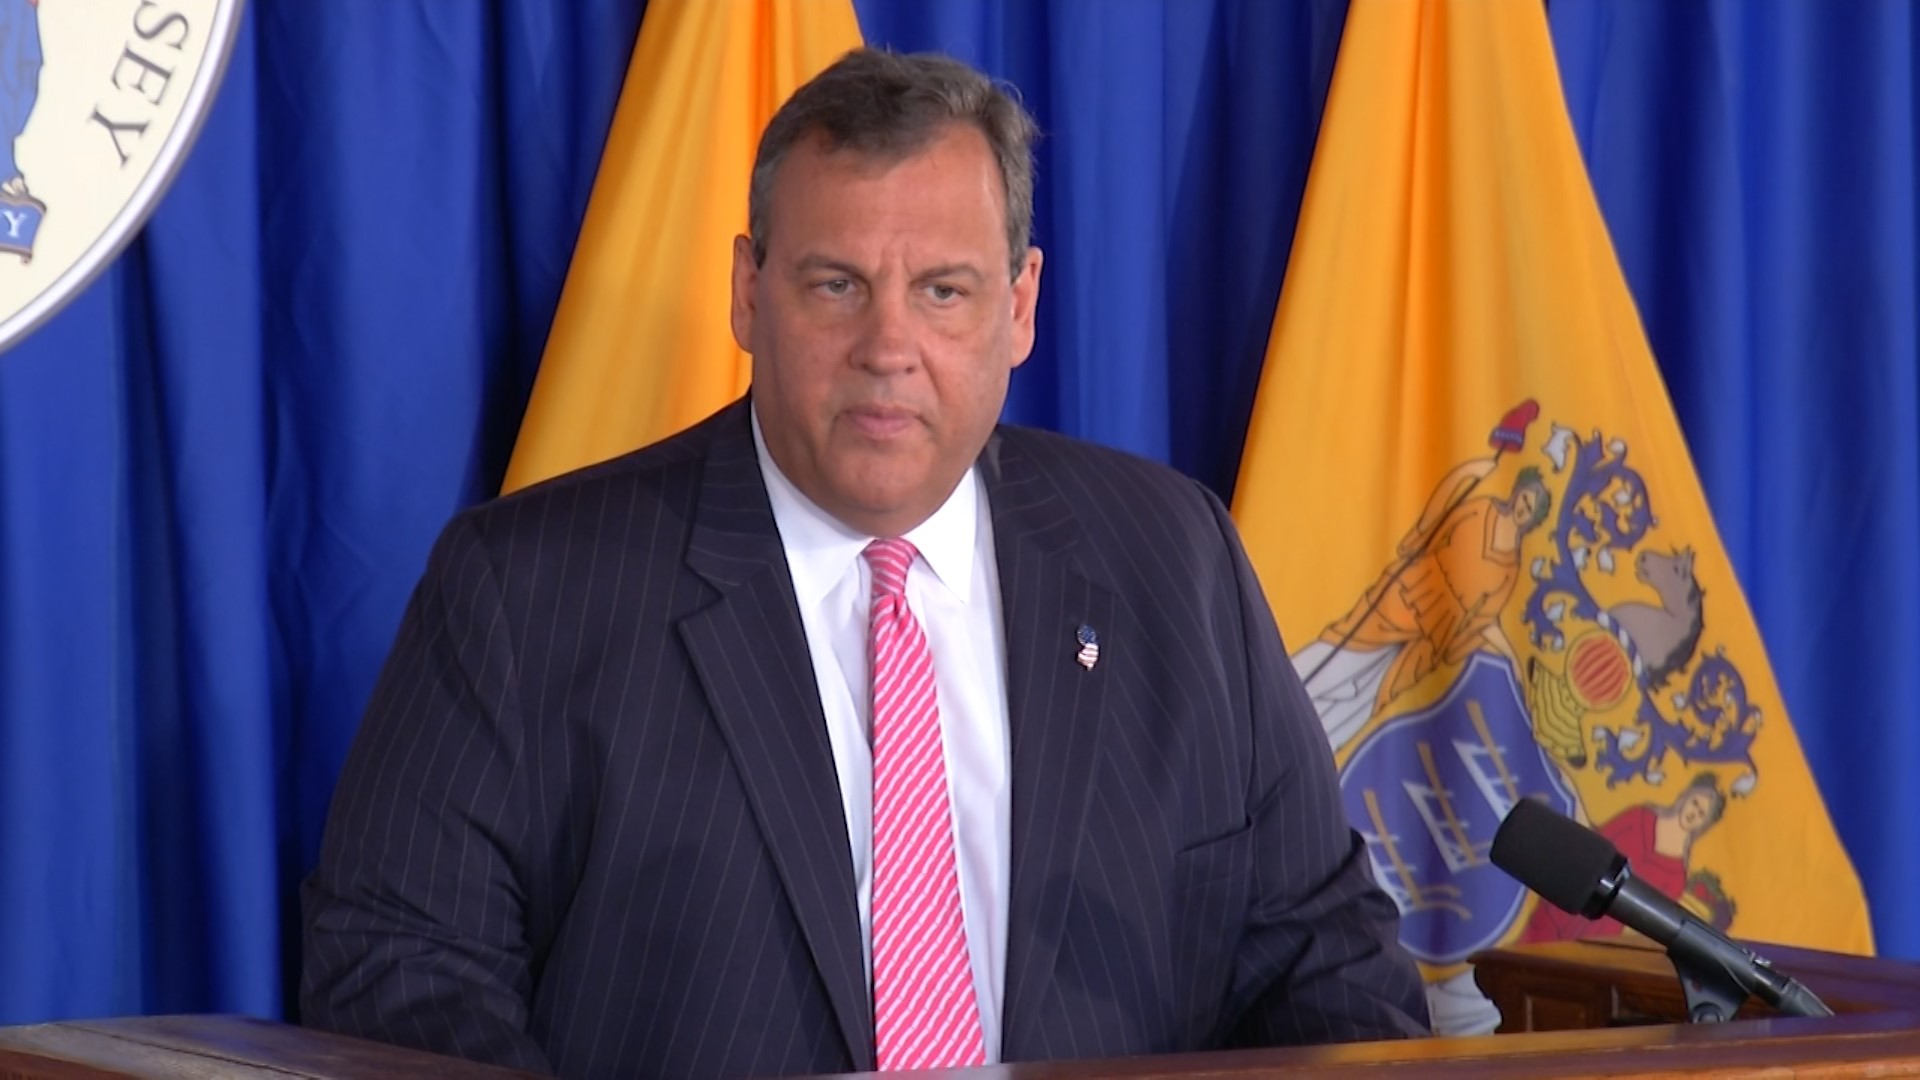 Christie slams Horizon, pushes for drug addiction funding from reserves